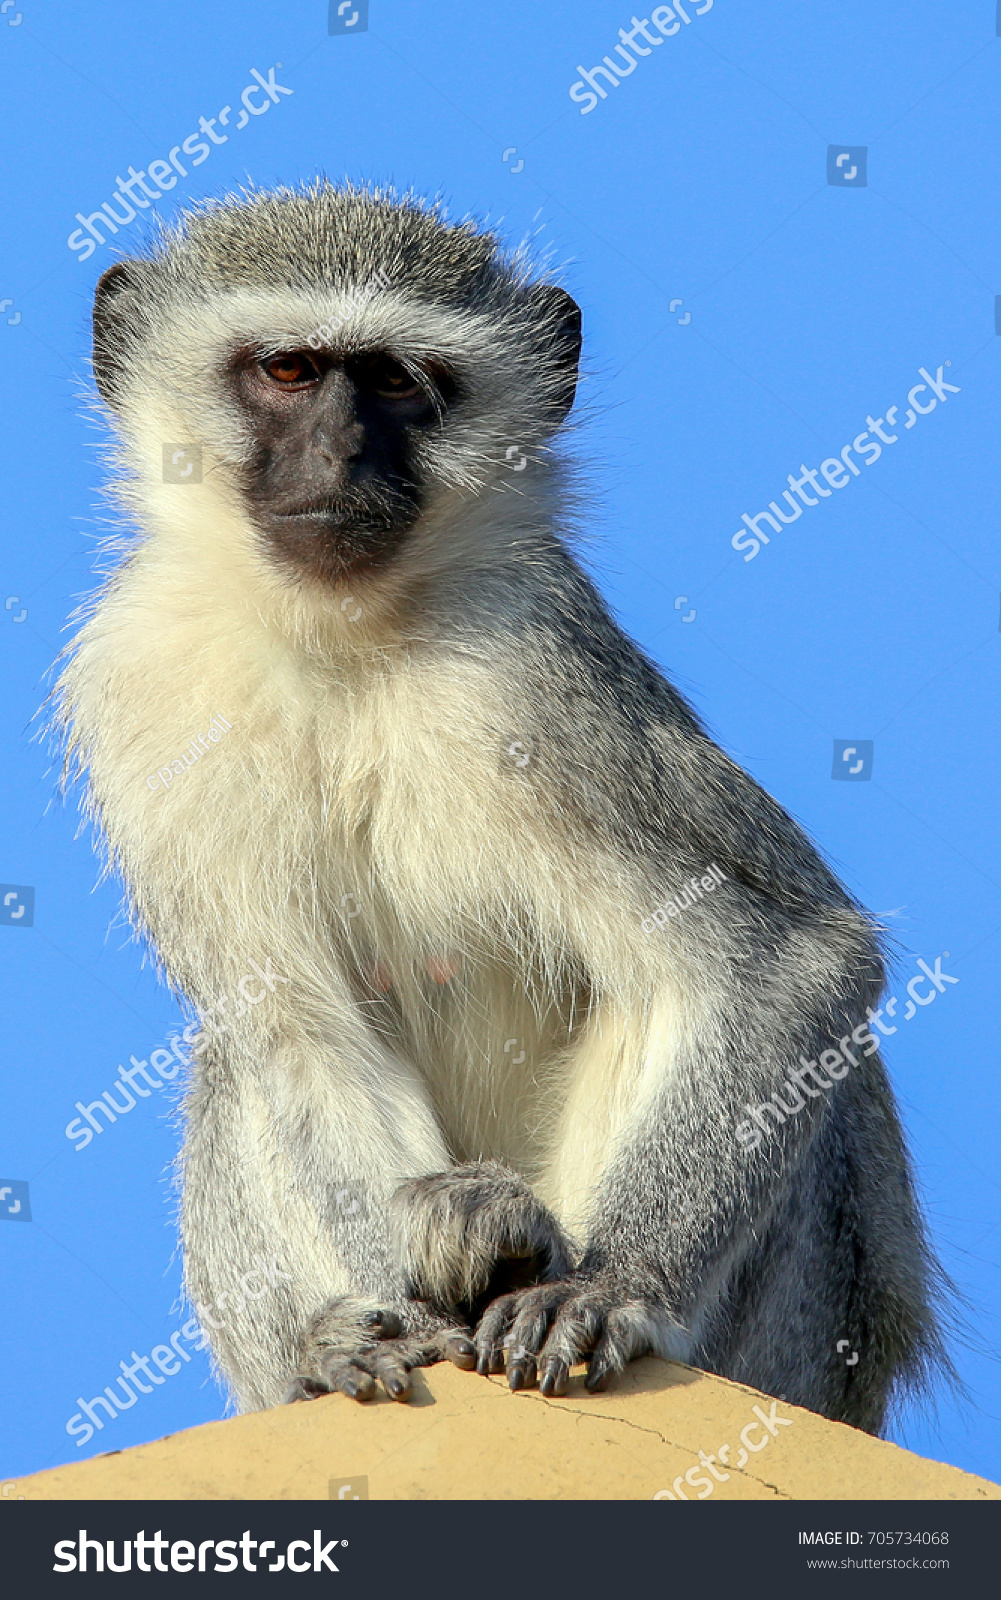 stock-photo-vervet-monkey-keeping-a-look